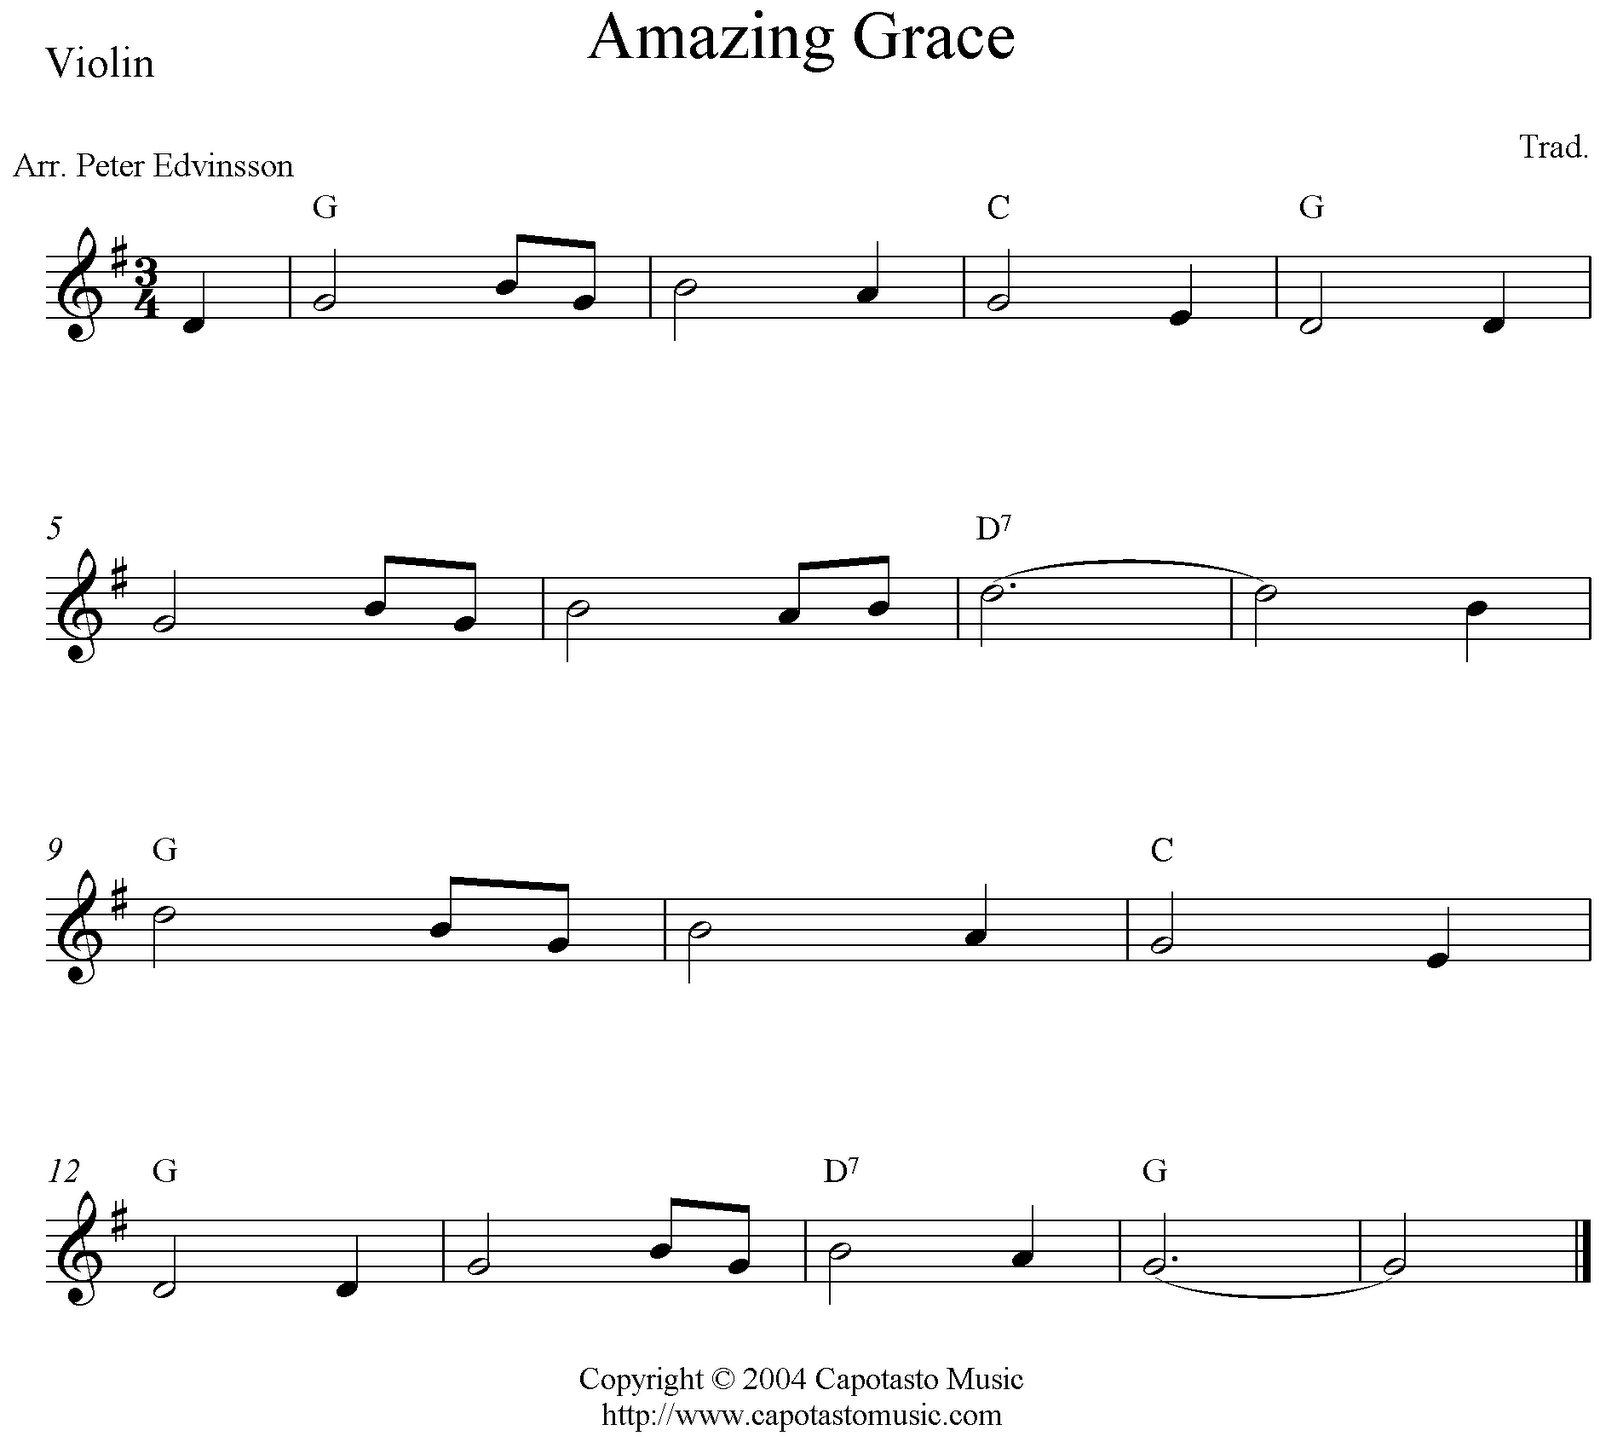 amazing grace song essay You have not saved any essays amazing grace written by jonathan kozol is a narrative work that explores the mediations and reflections of some very young black and hispanic children who although they live in one of the most violent, diseased communities in the developed world they retain a soaring.